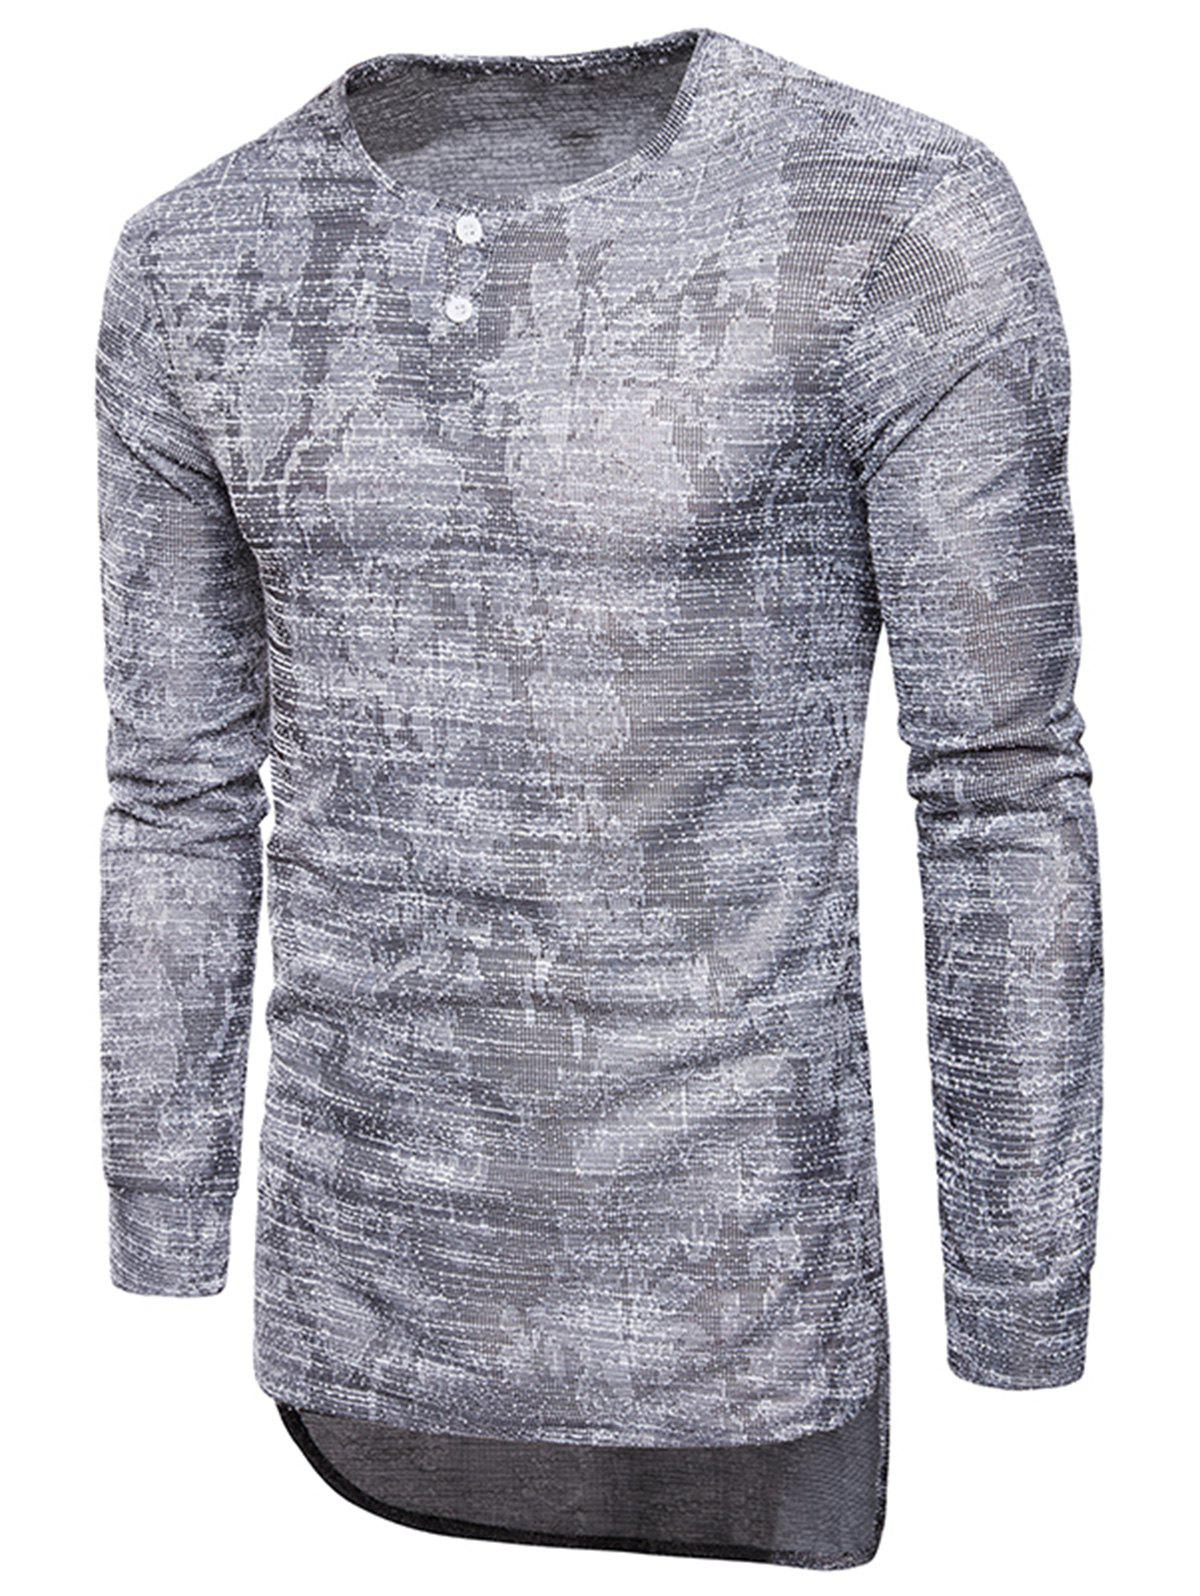 Long Sleeve Longline Jacquard T-shirt - GRAY XL